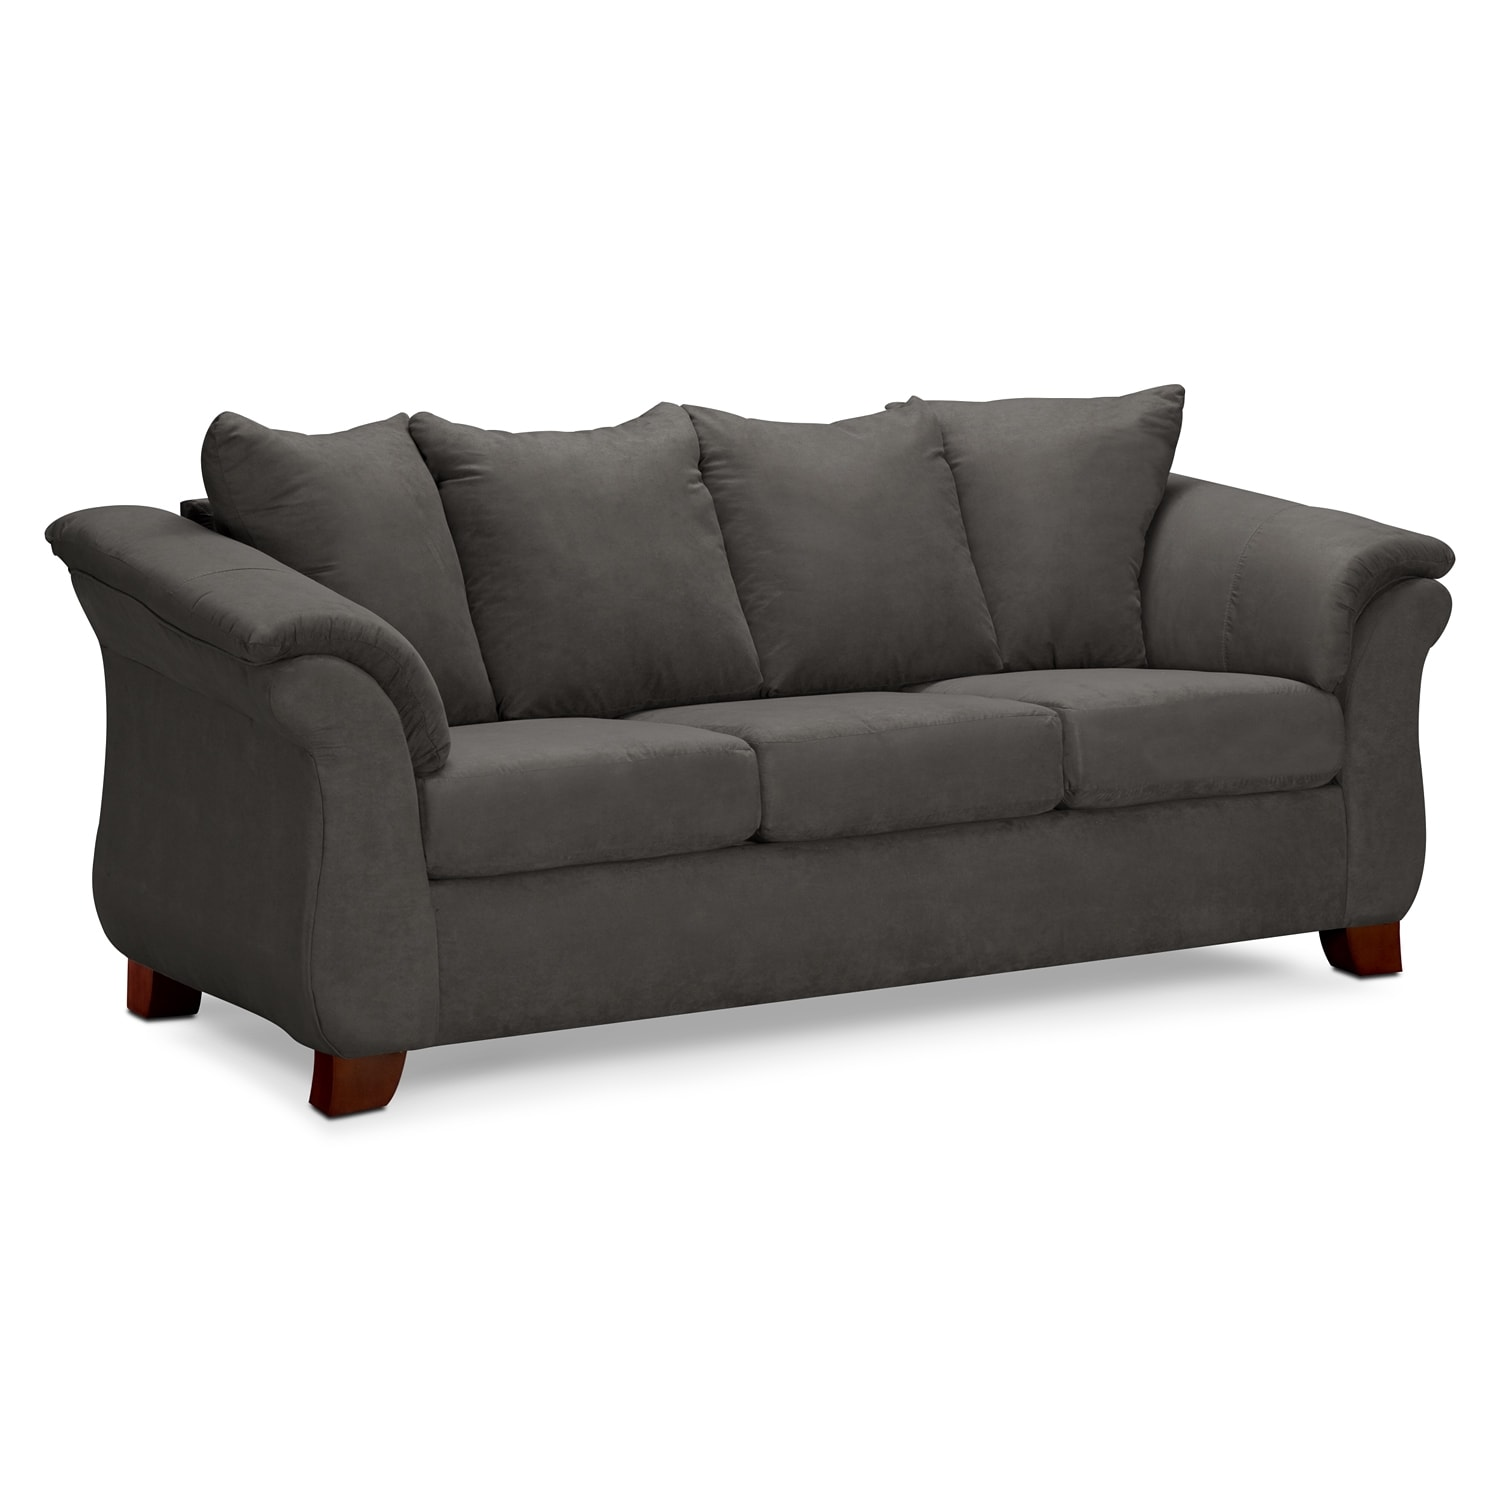 adrian sofa graphite value city furniture. Black Bedroom Furniture Sets. Home Design Ideas